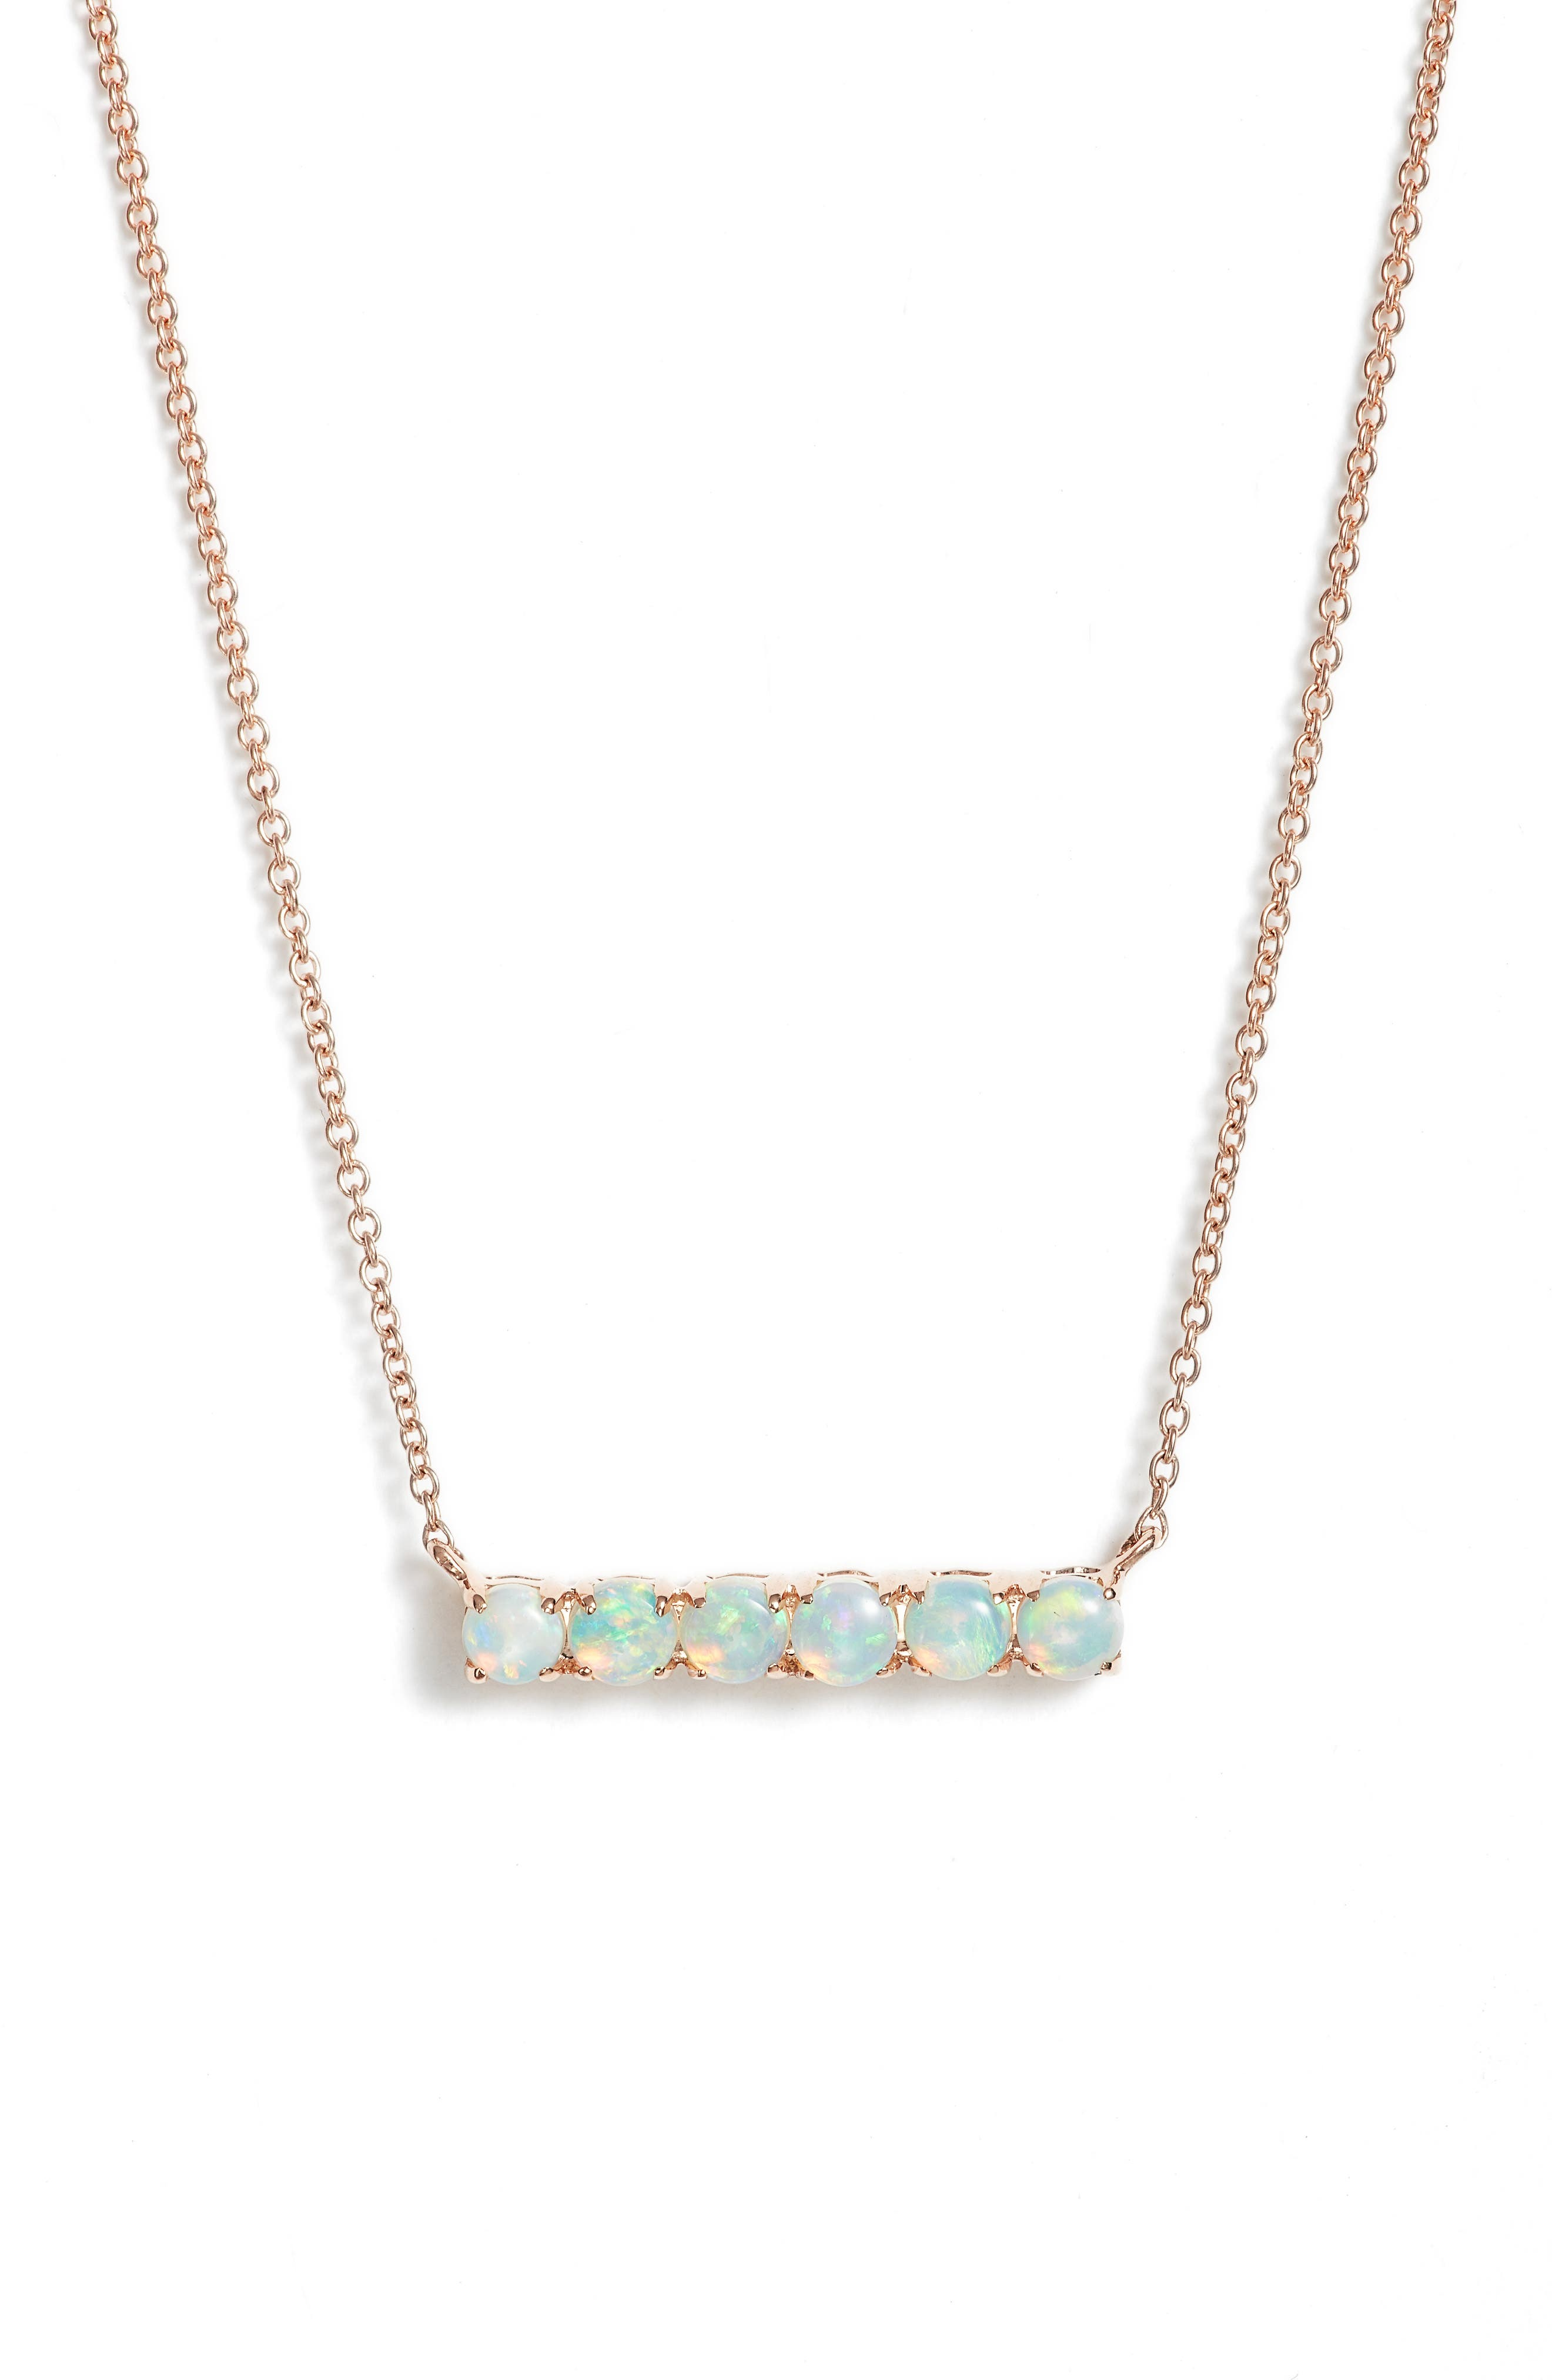 Dana Rebecca Designs Bar Pendant Necklace